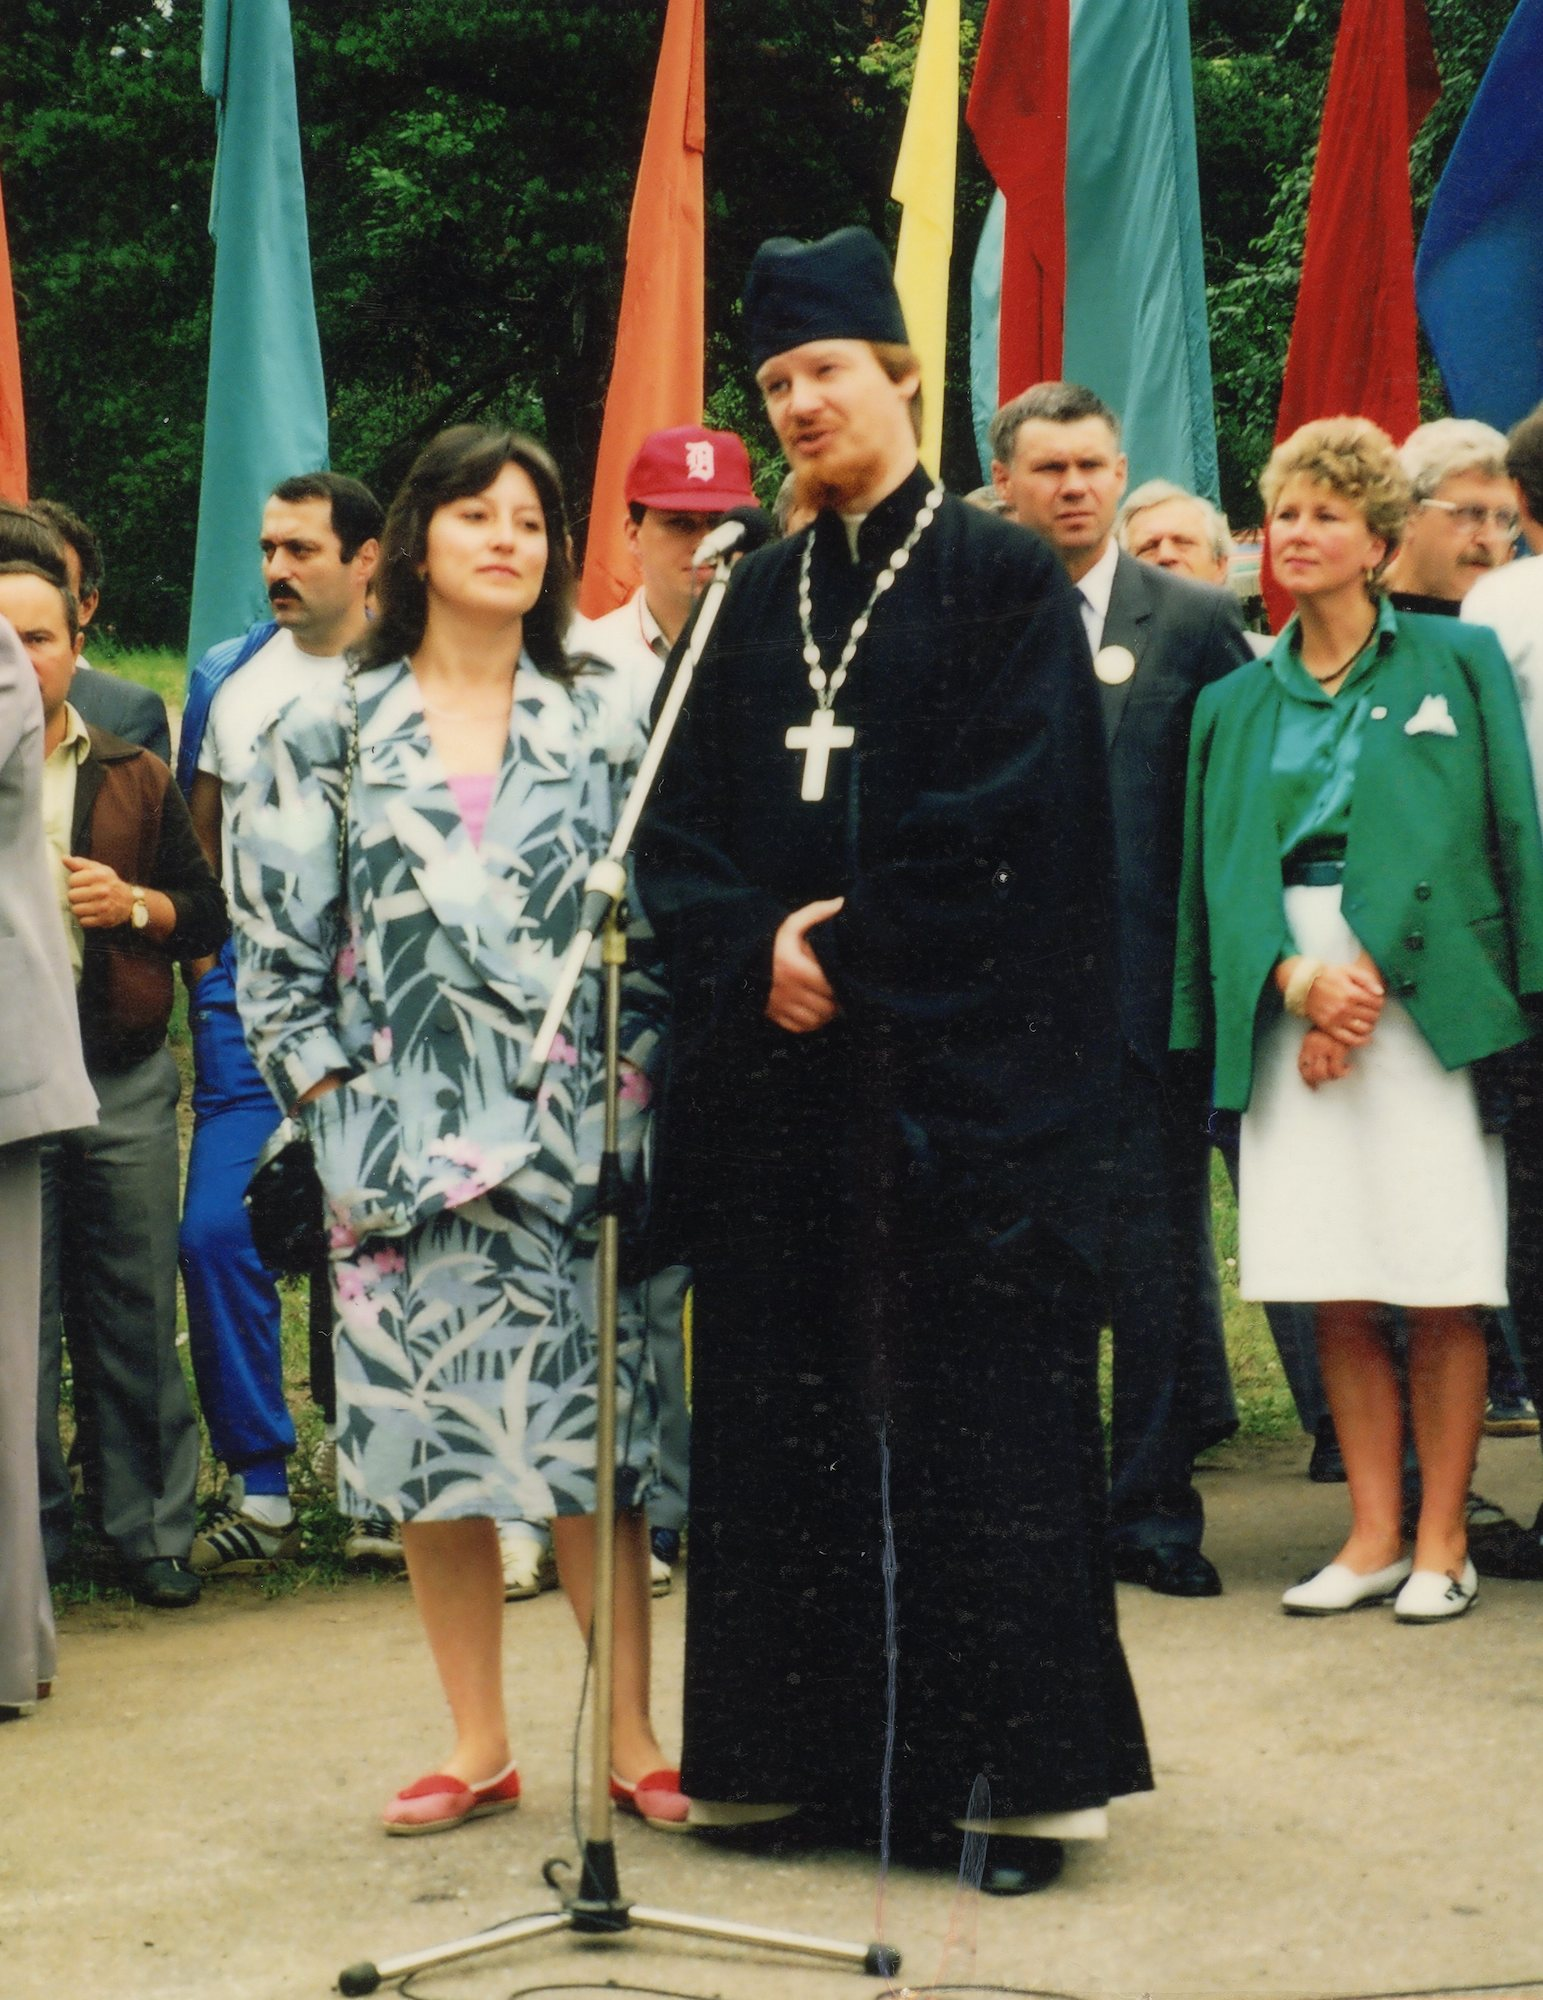 A Russian orthodox priest blesses the athletes with the translator by his side. The woman in green in the back is the mayor.